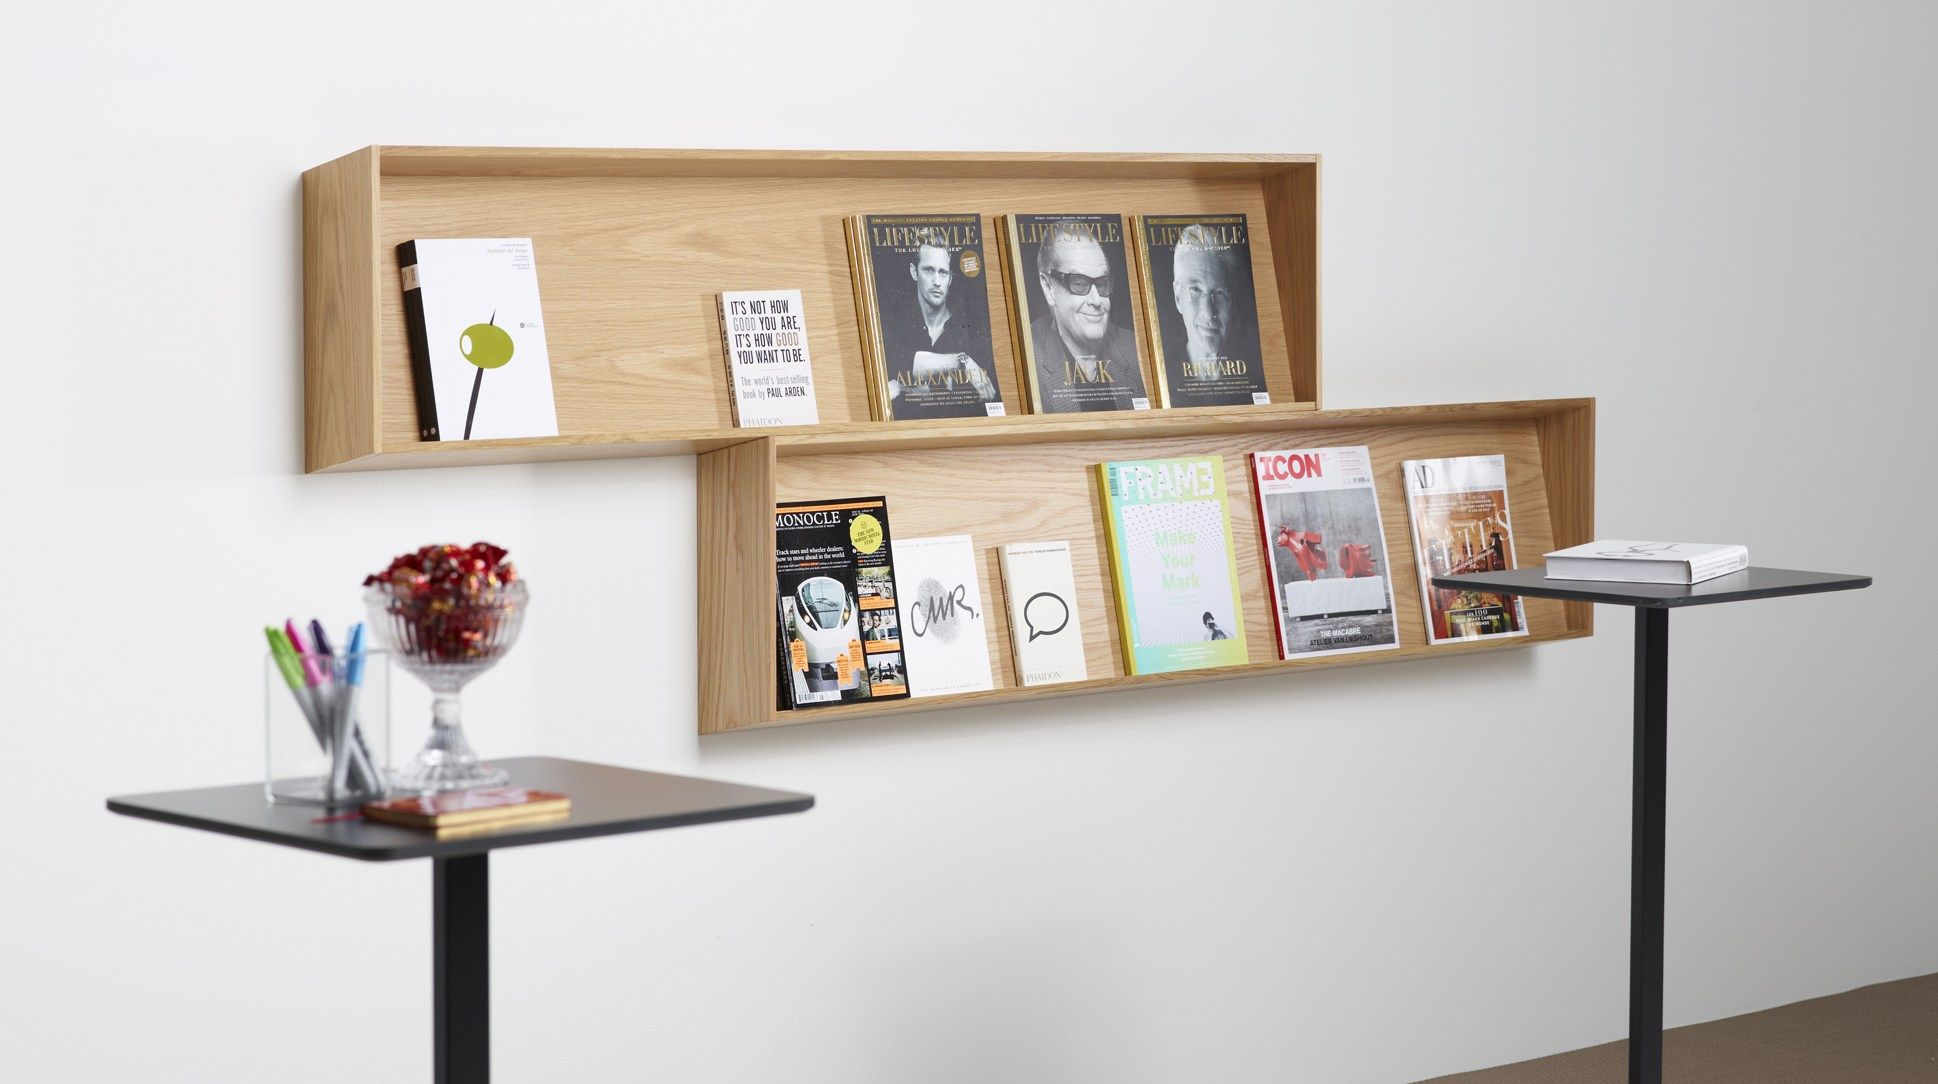 Fantastic Shelving Units For Contemporary Home Interior Furniture: Chic  Shelving Units With Wall Mounted Shelving Units For Bookshelf With Lowes  Shelving ...